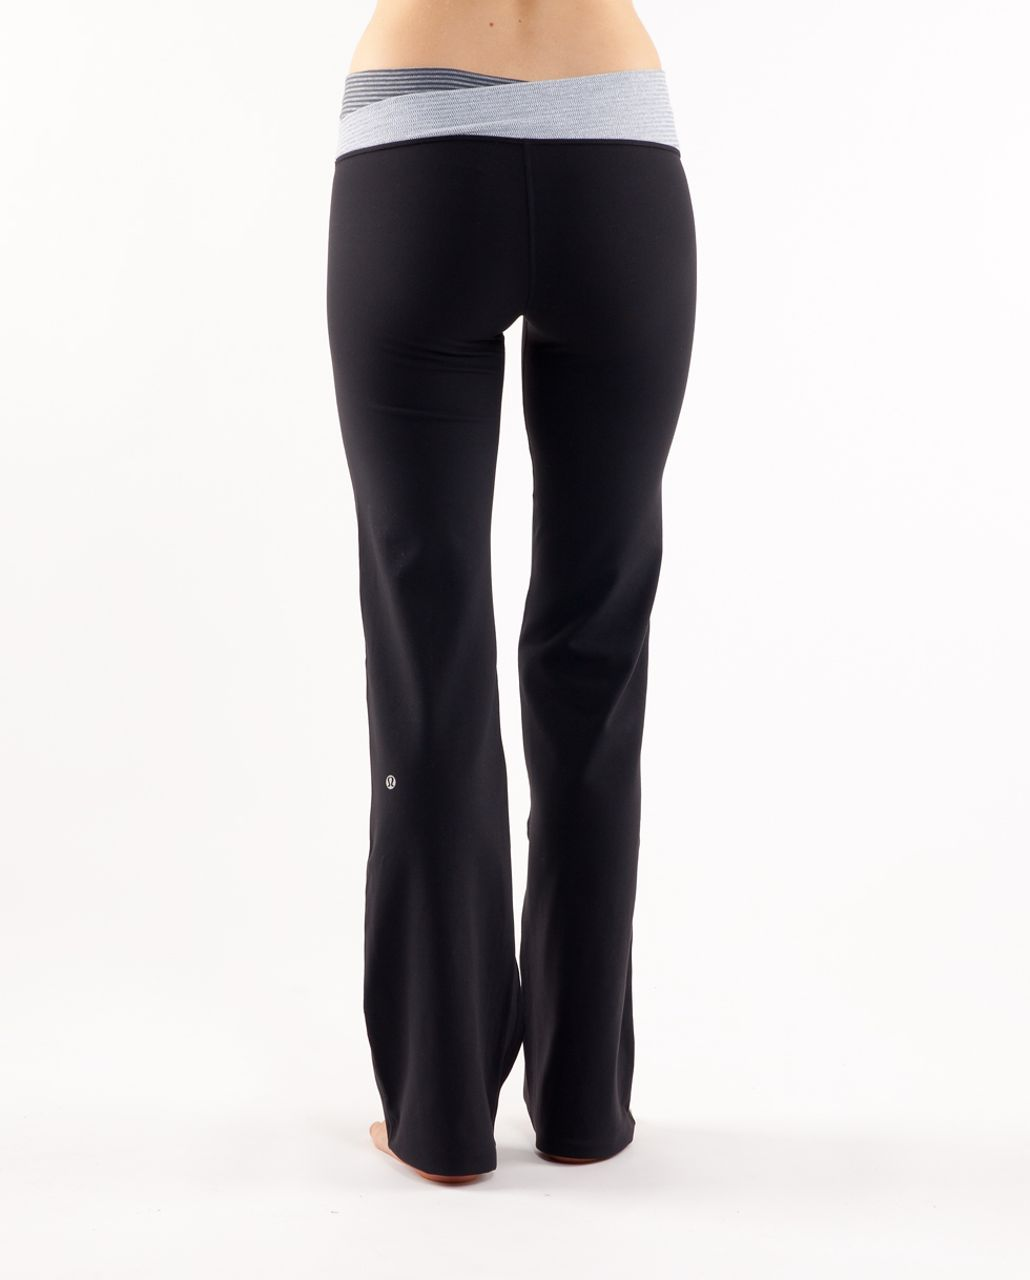 Lululemon Astro Pant (Regular) - Black /  Deep Coal Mini Check /  White Heathered Blurred Grey Mini Check